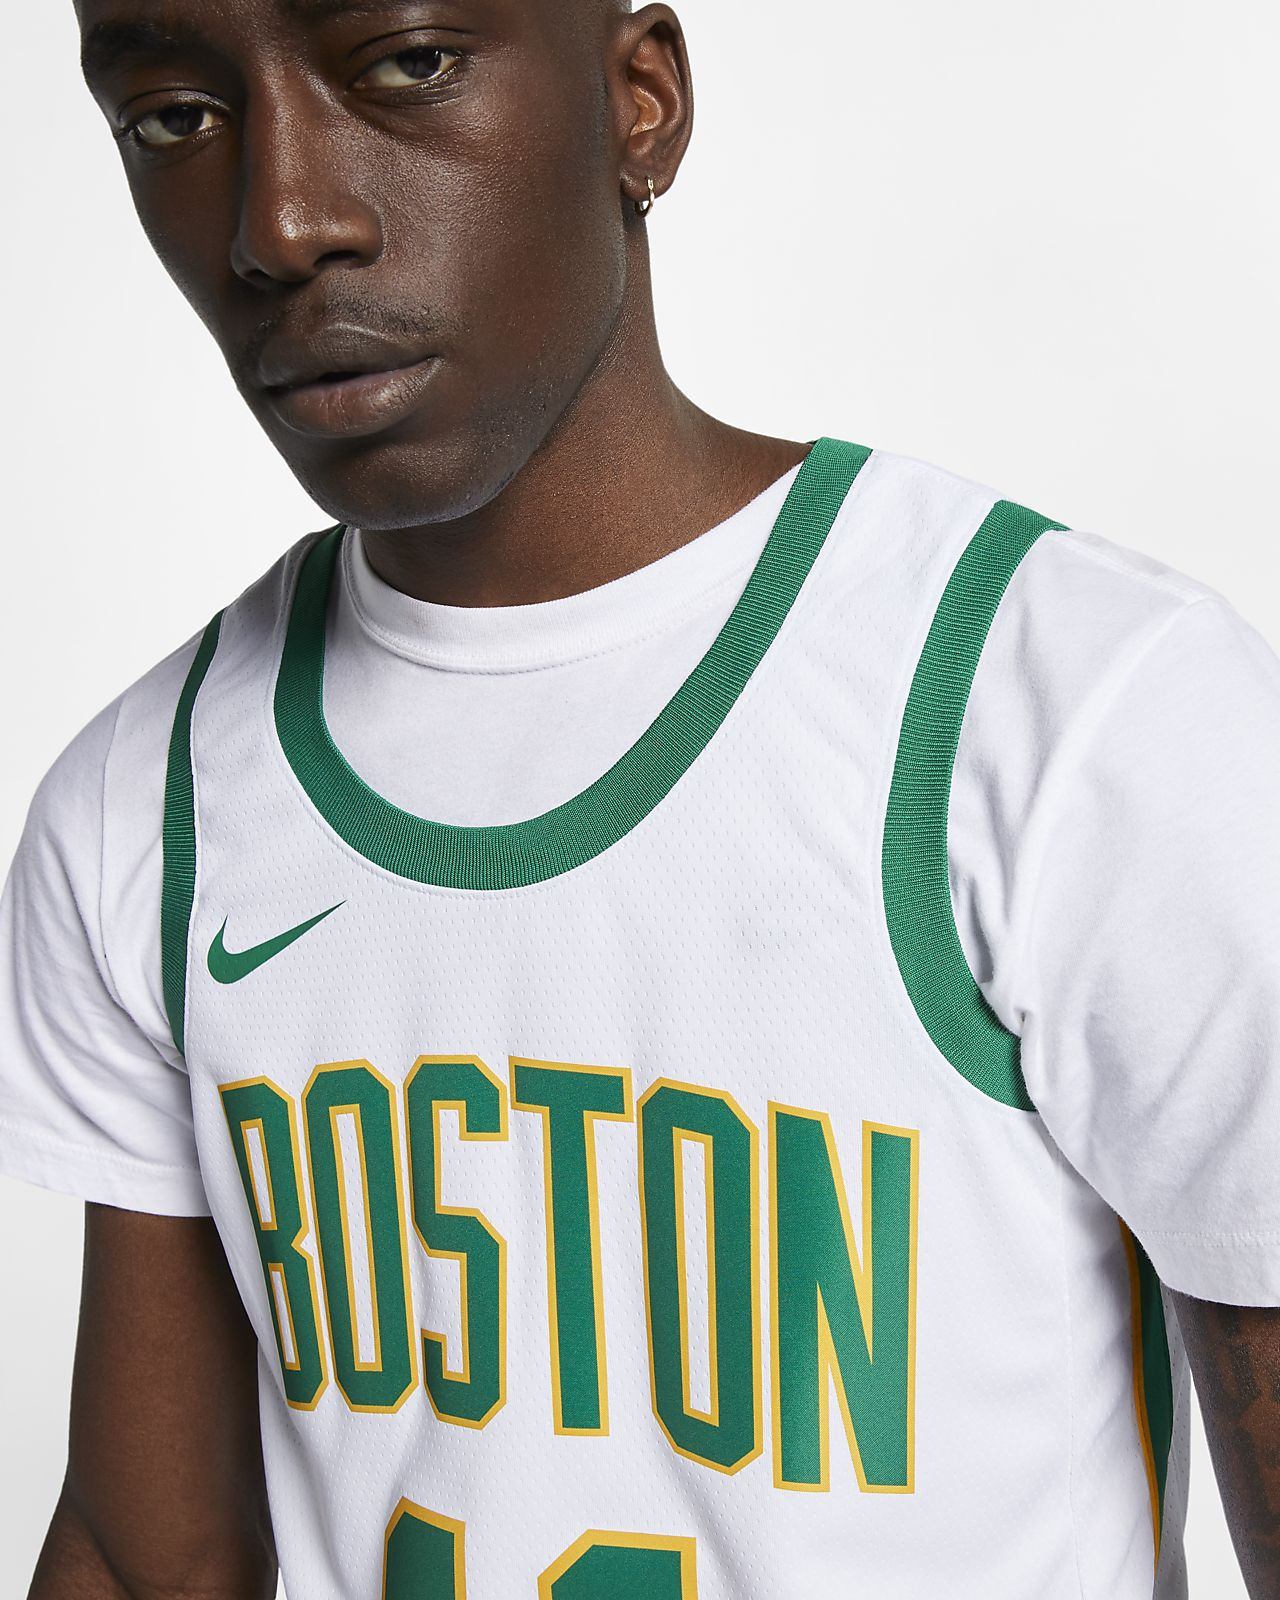 e9bbe2b0e6e4 ... Kyrie Irving City Edition Swingman (Boston Celtics) Men s Nike NBA  Connected Jersey